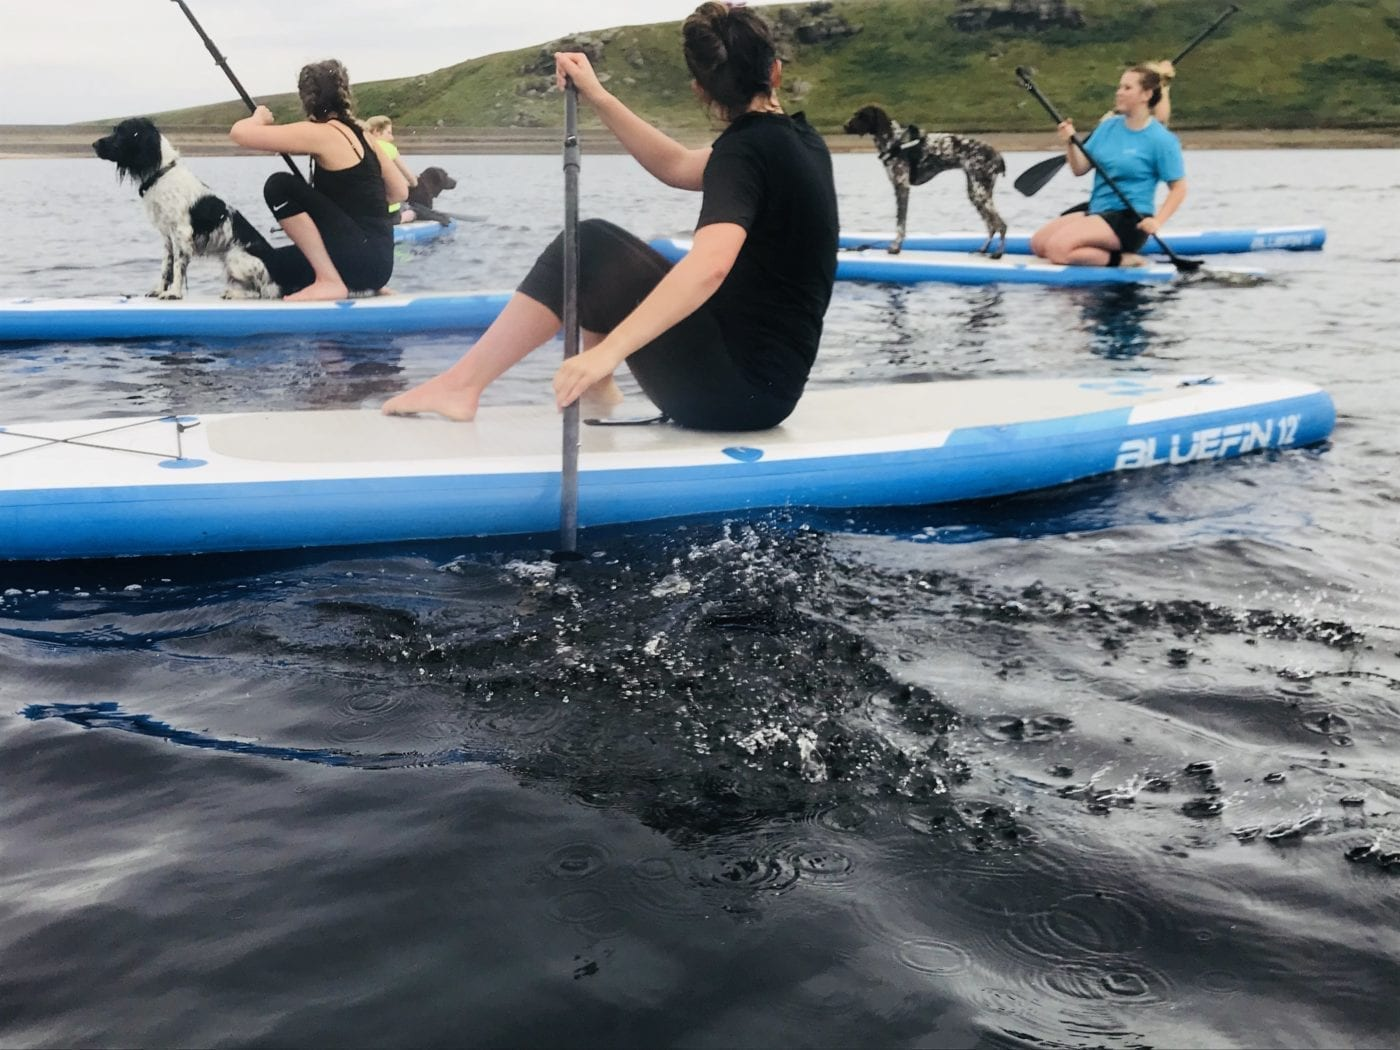 Bluefin SUP West Yorkshire OPP